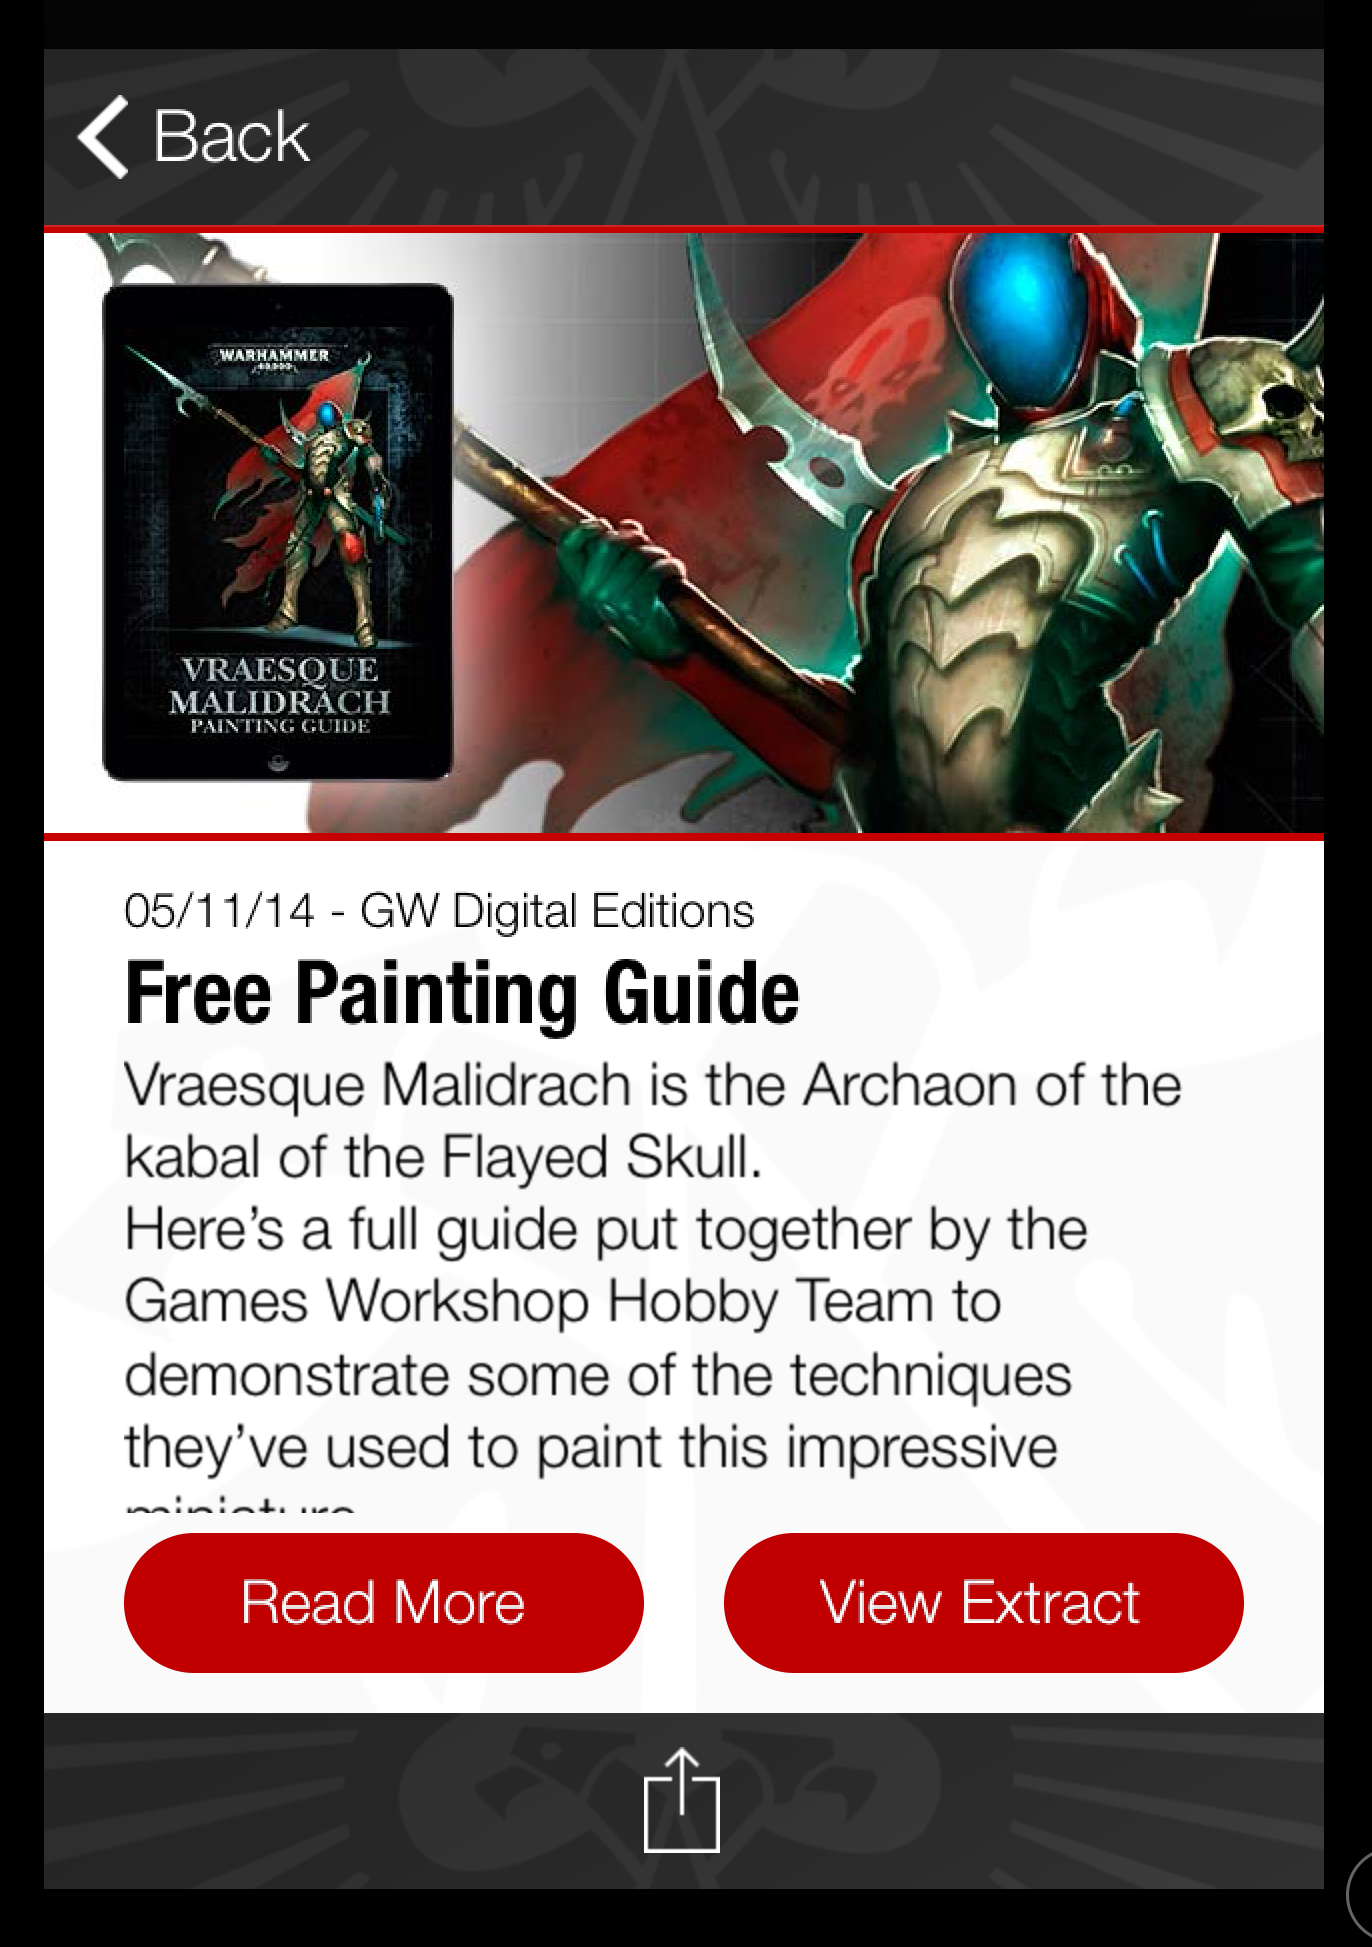 The Free Painting Guide